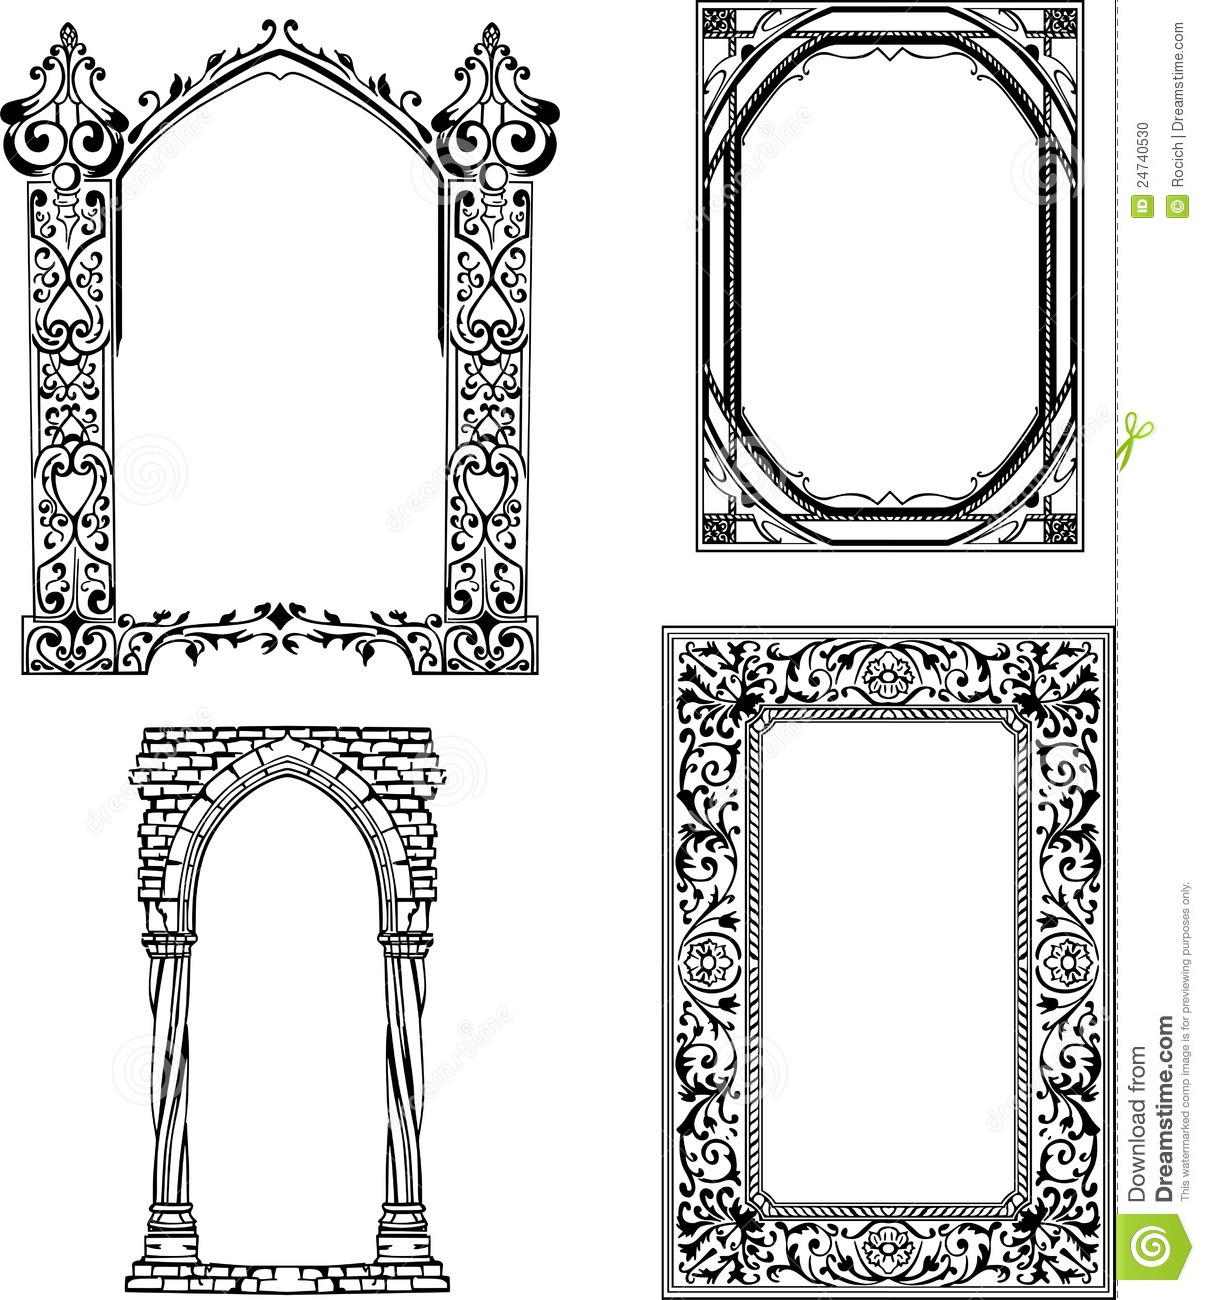 Art Nouveau frames. Set of black and white vector illustrations.